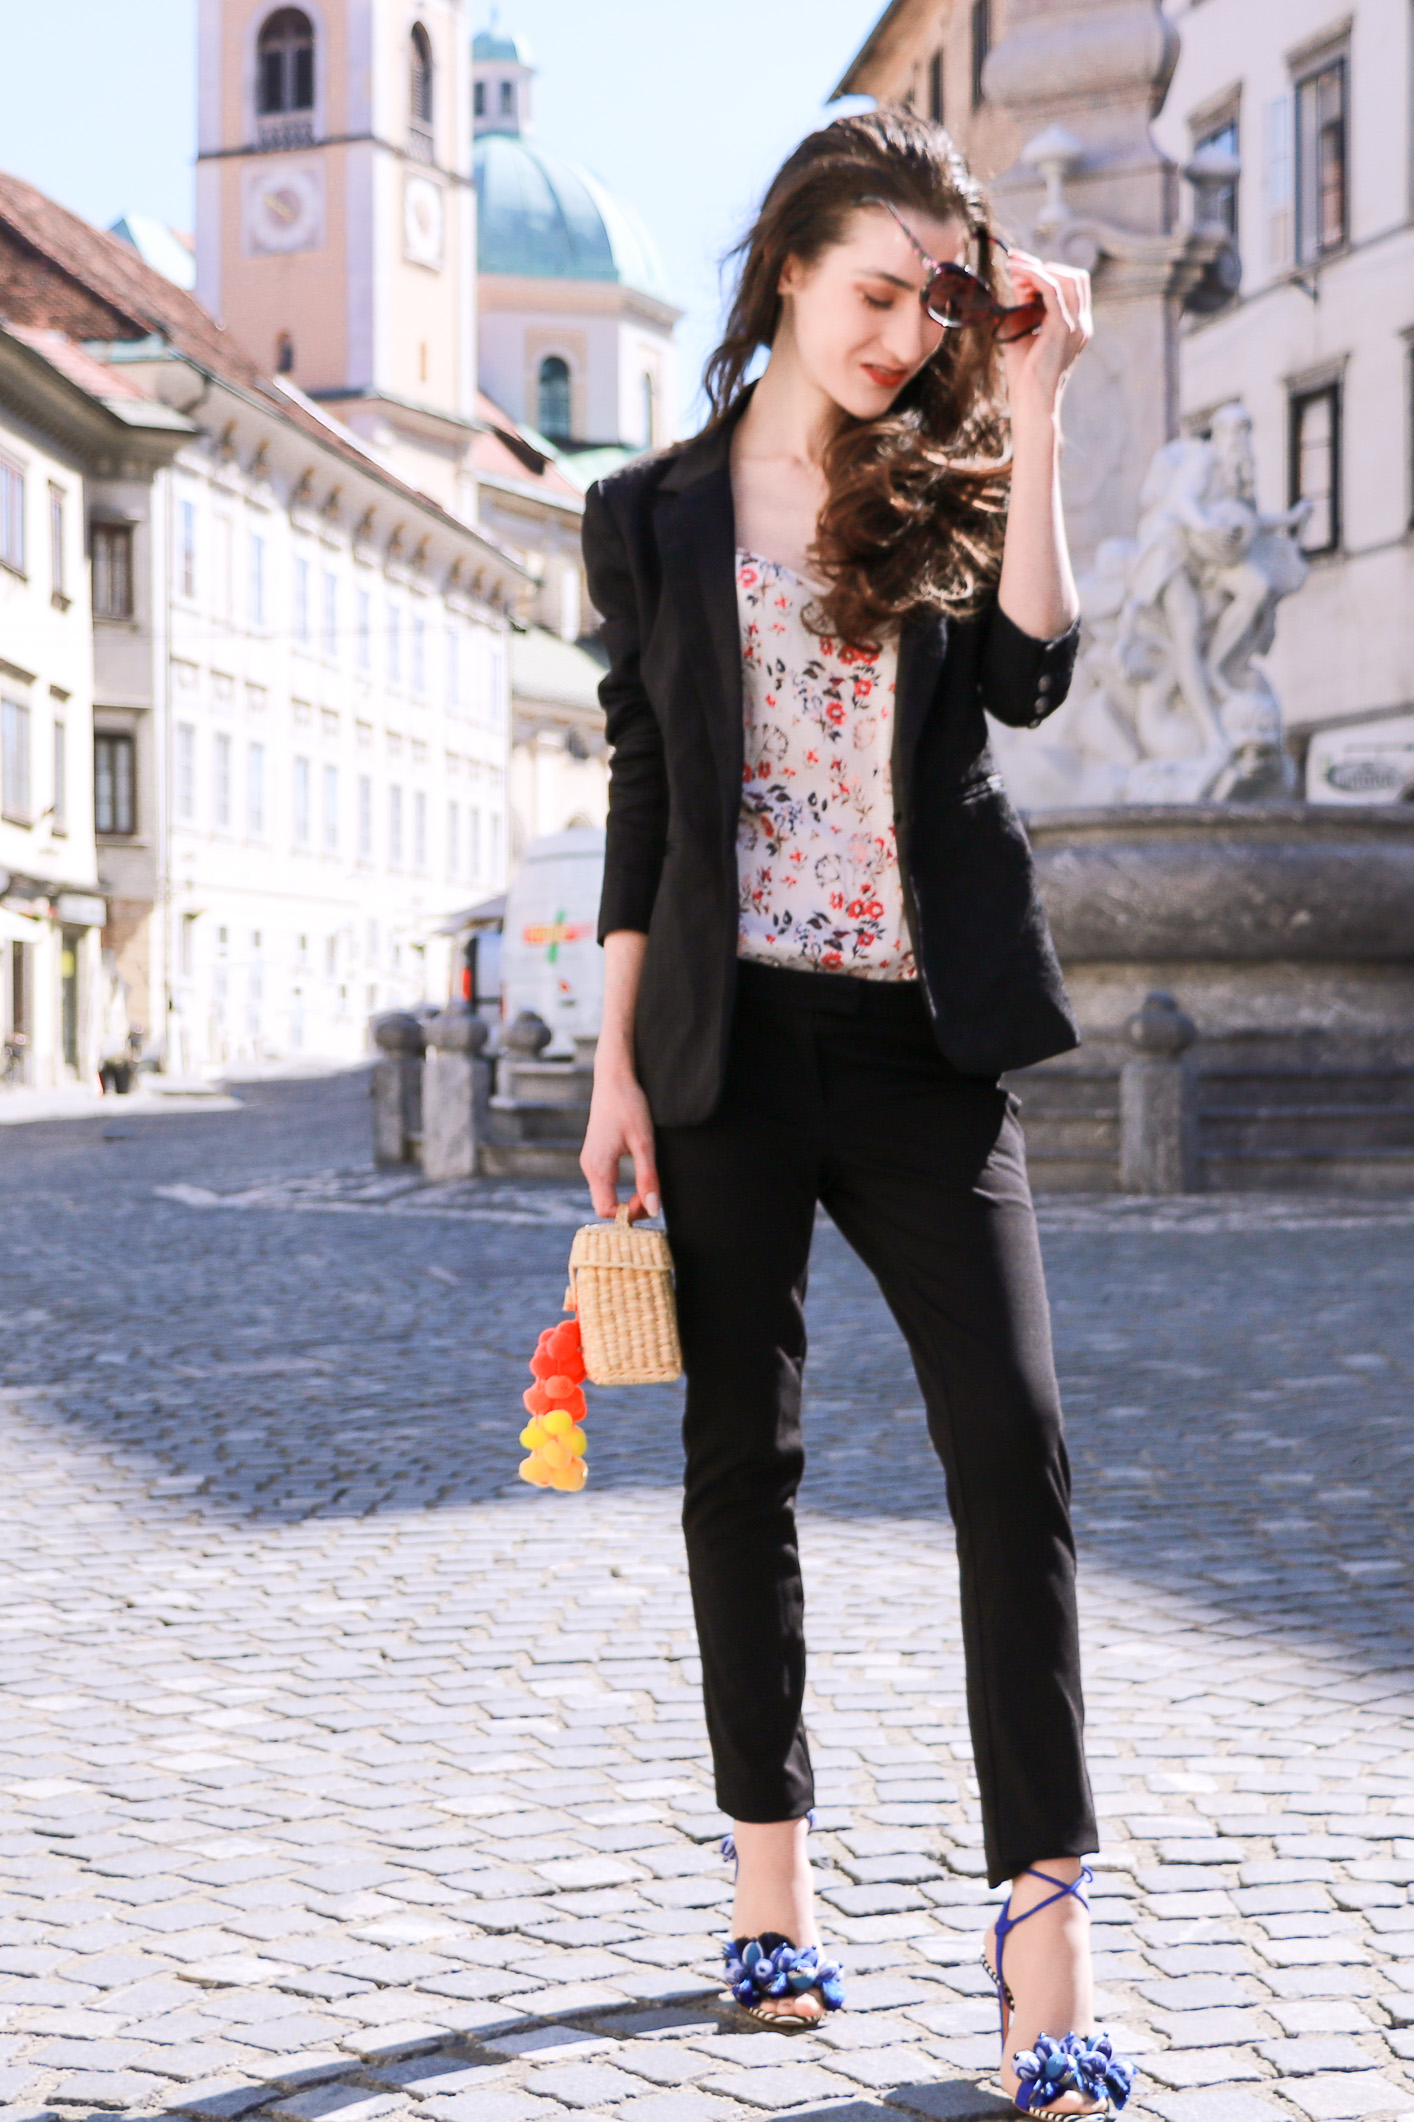 Fashion blogger Veronika Lipar of Brunette From Wall Street sharing how to style all black suit this summer